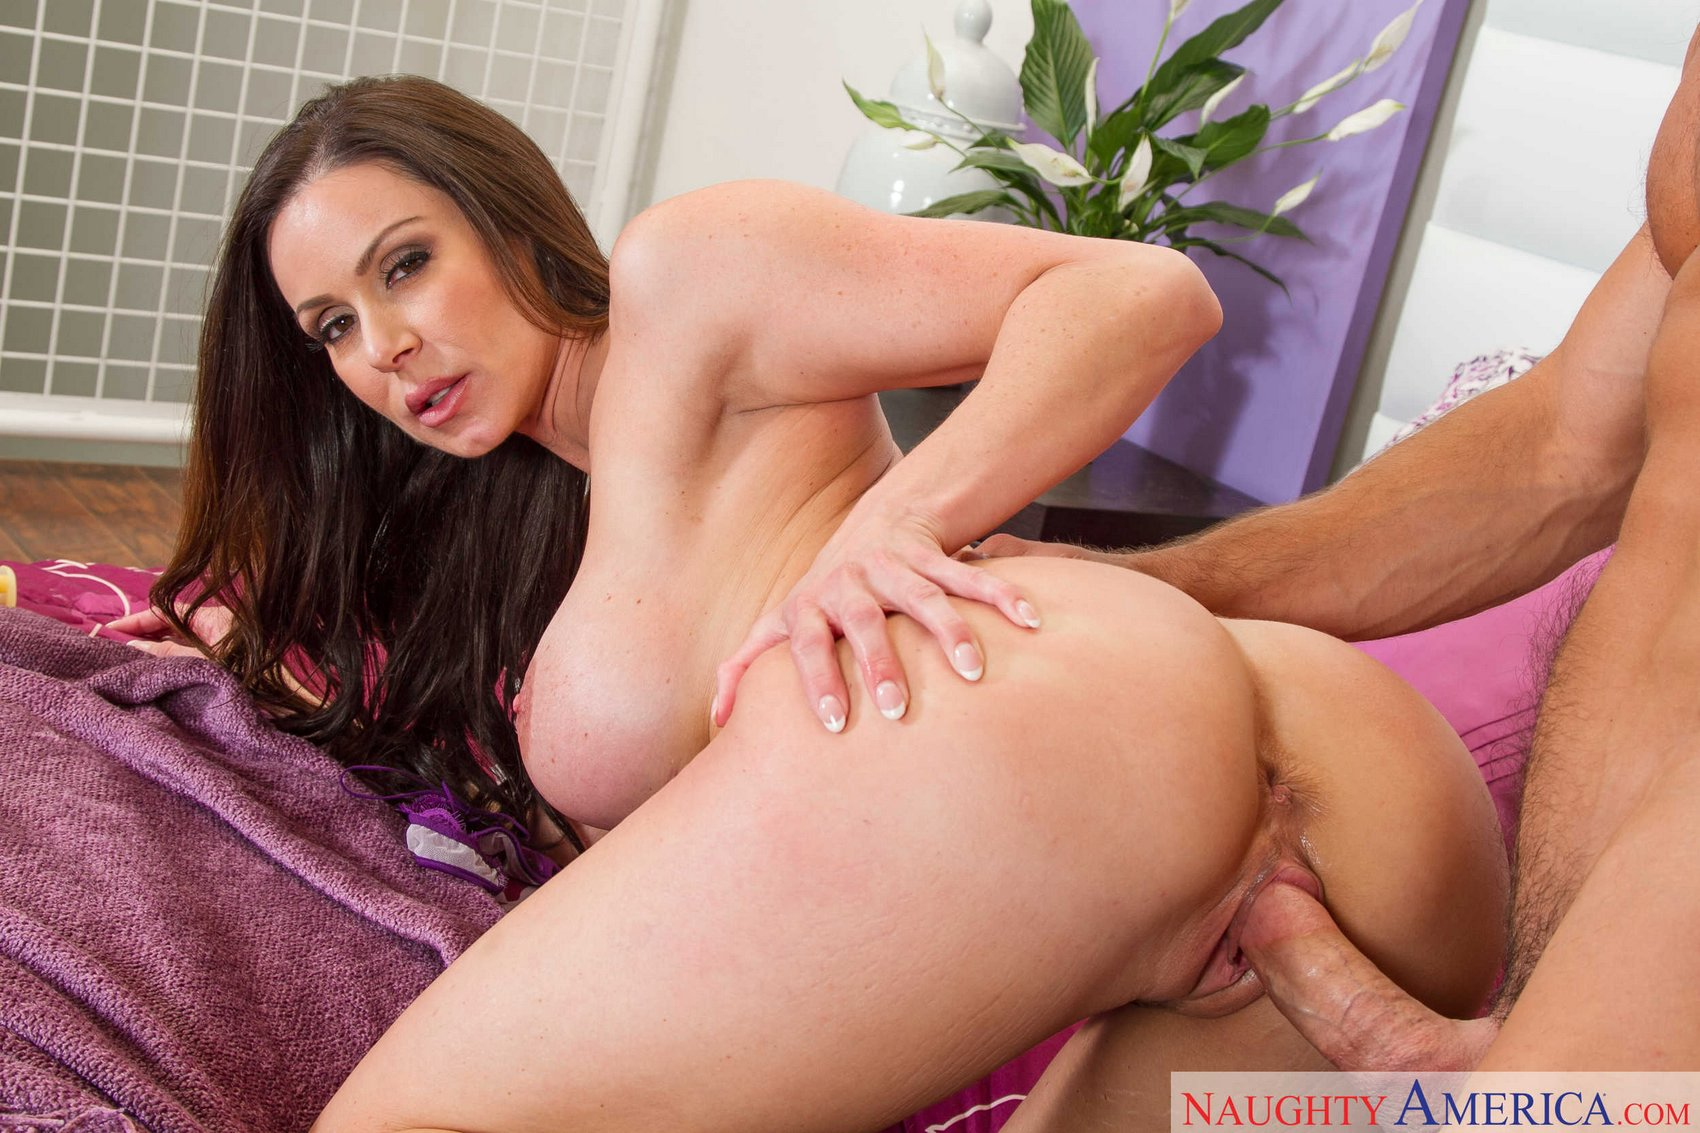 My Friends Hot Mommy Porn Movies pretty hot milf kendra lust enjoys sex with muscular man my